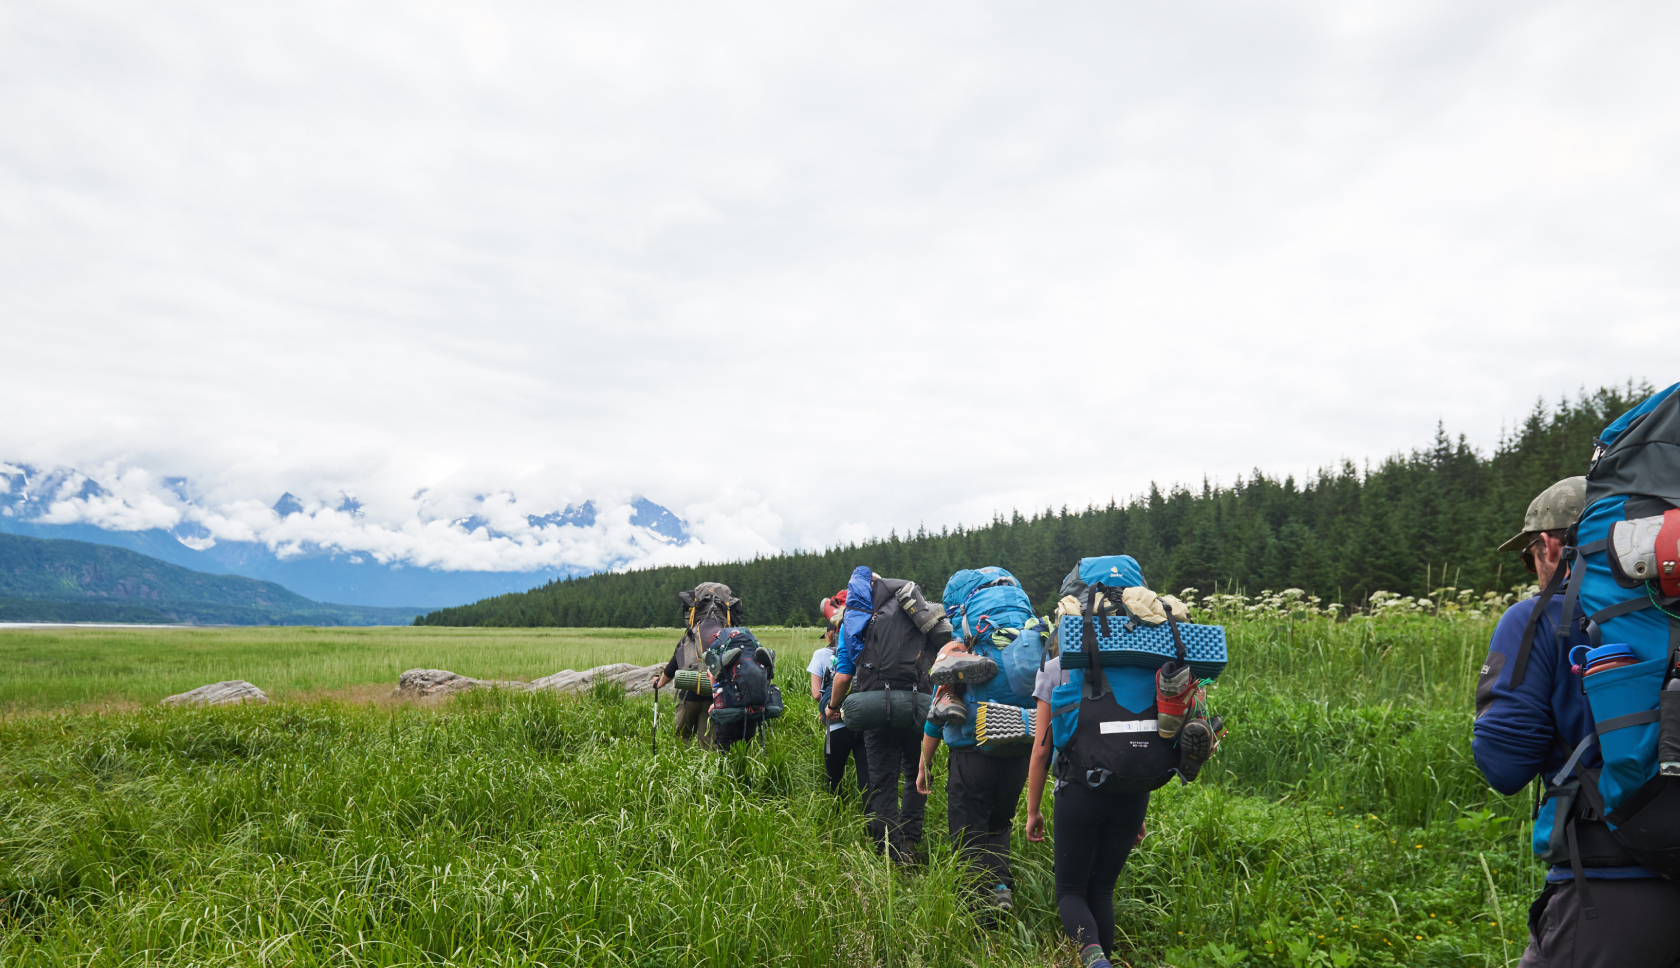 Travelers with backpacks walking in a line